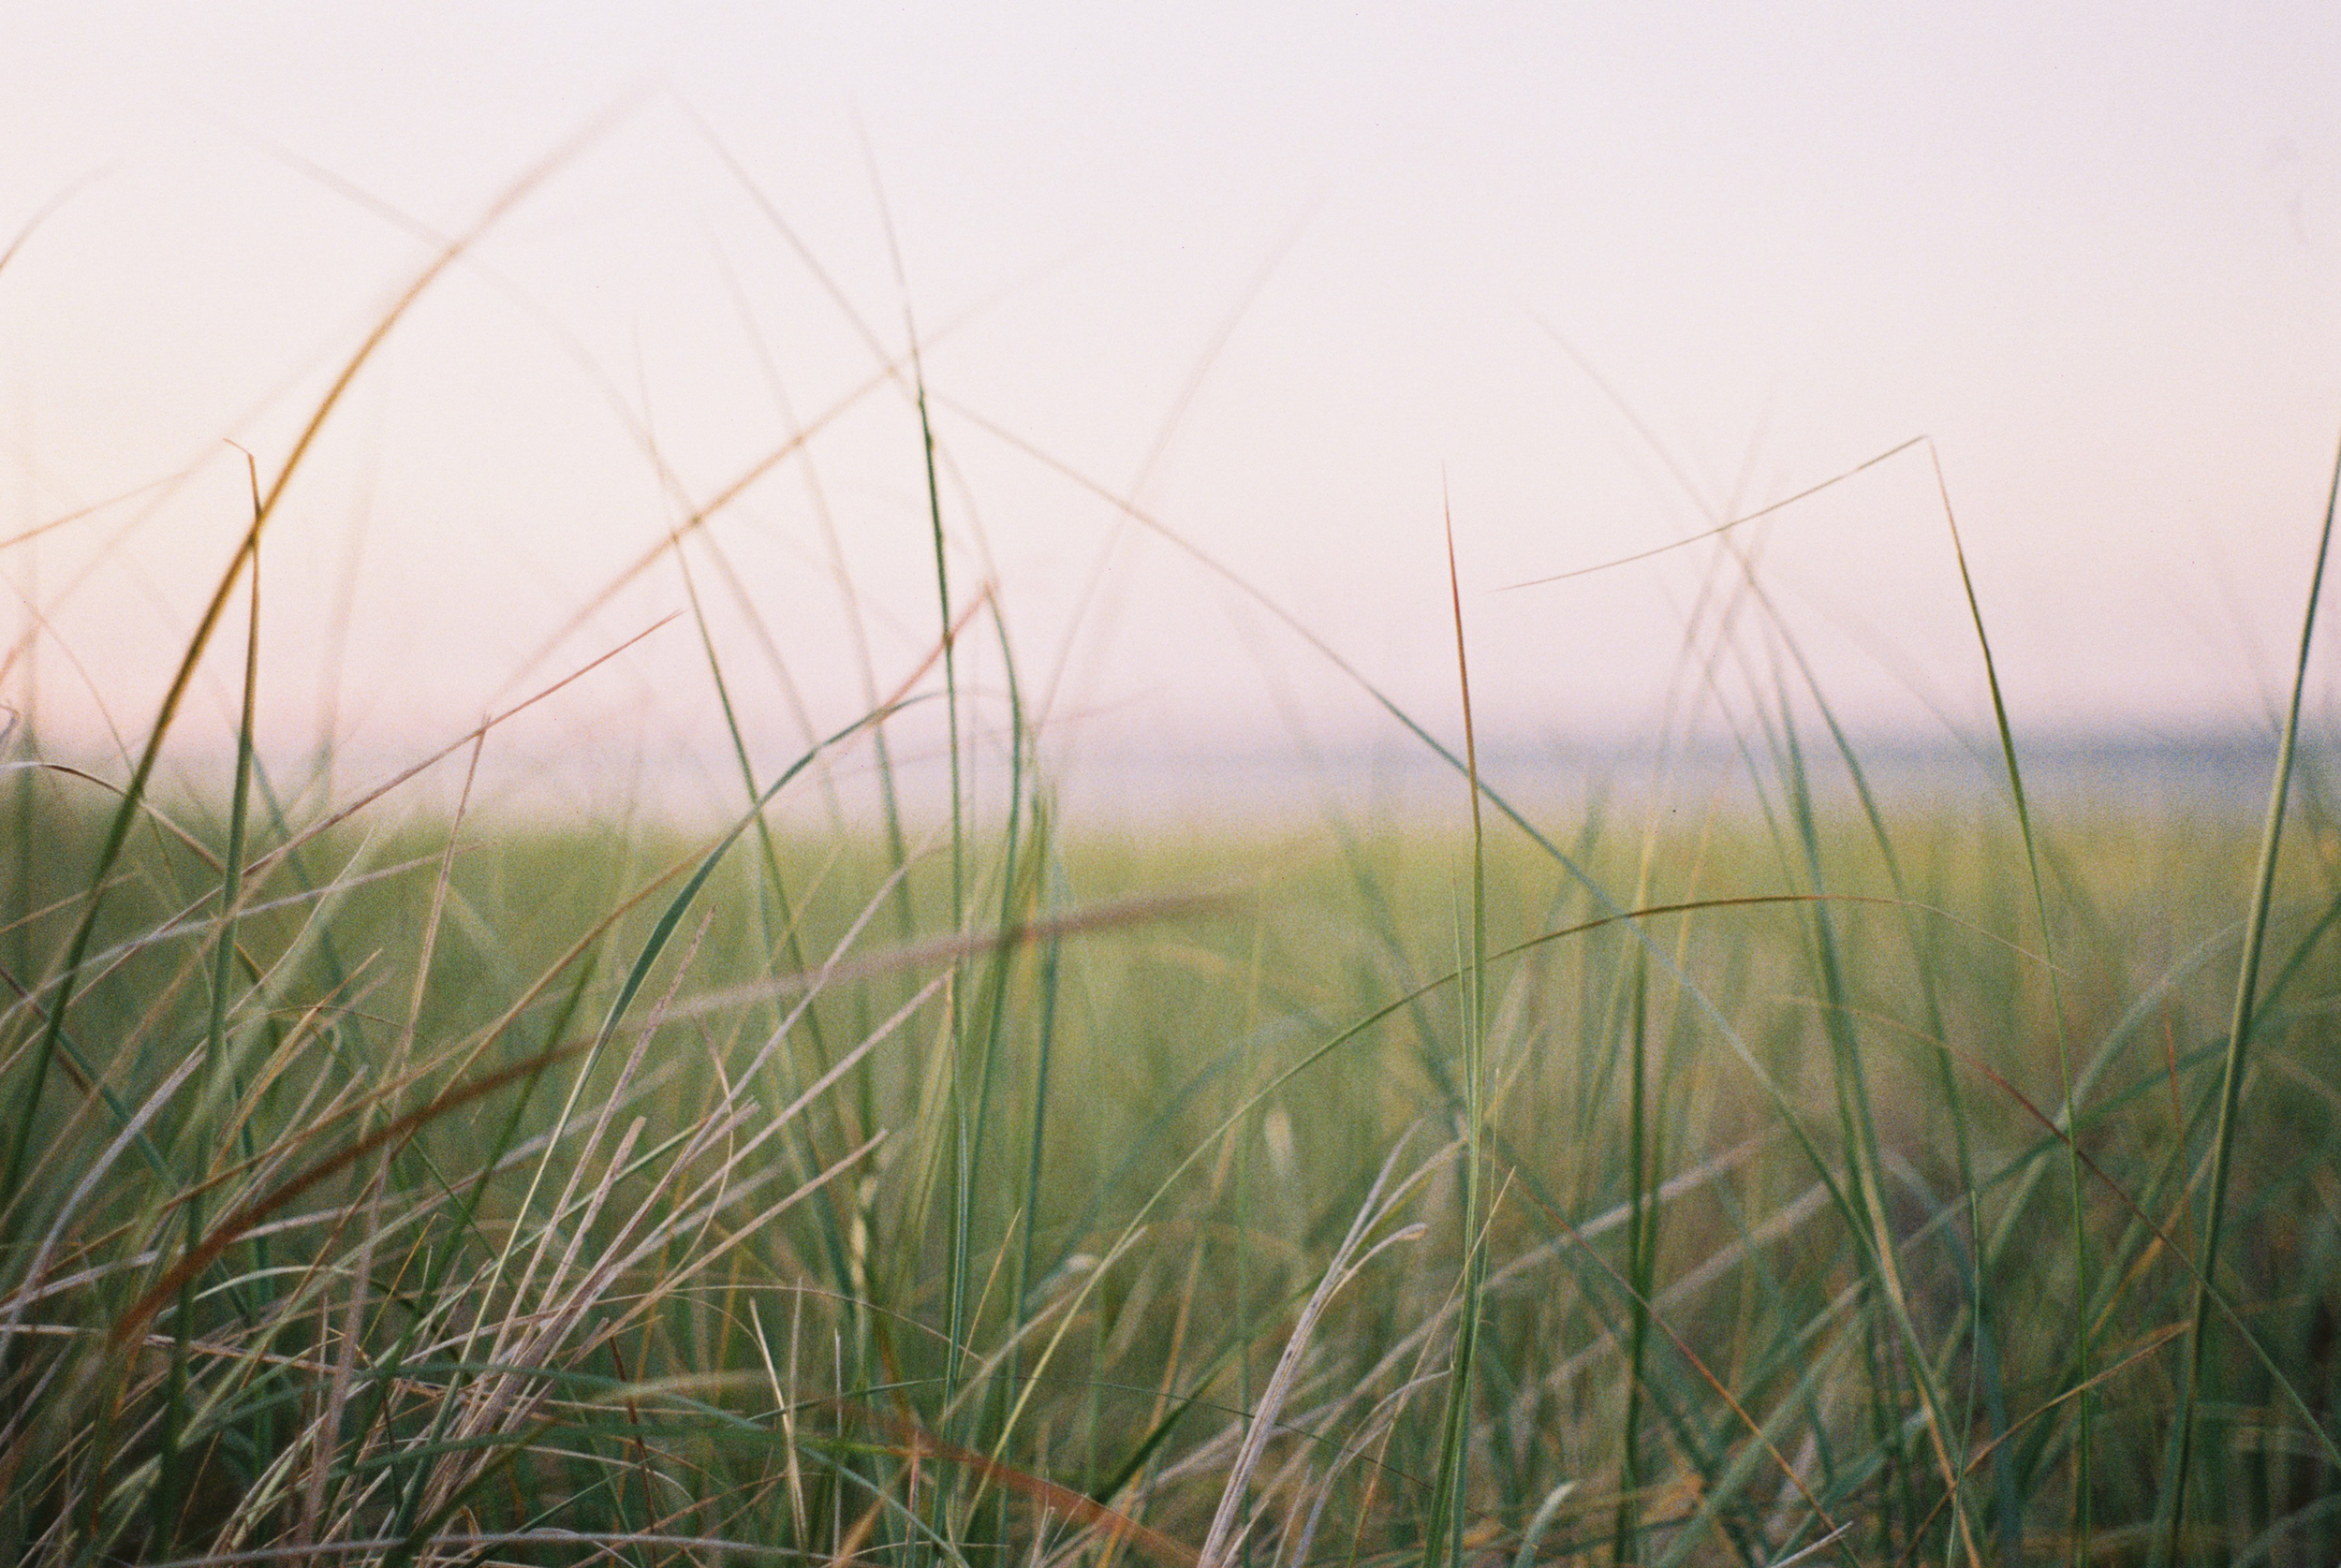 beach_grass-straighten.jpg